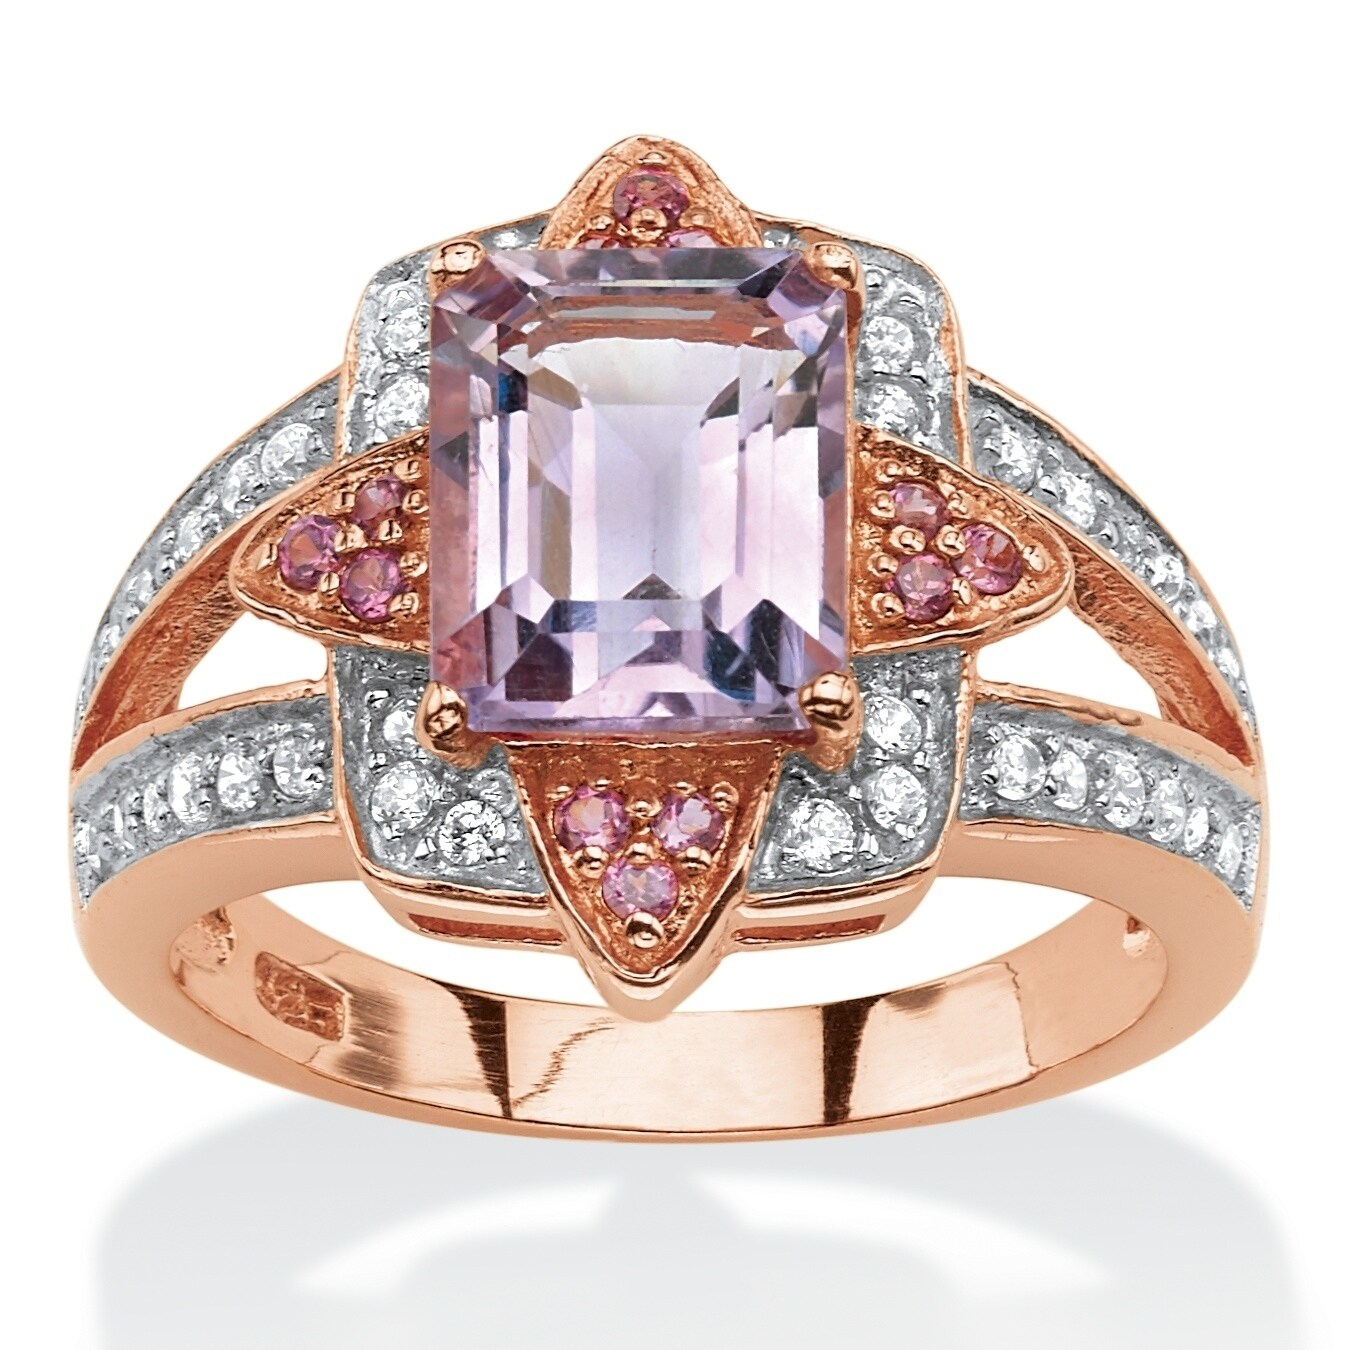 Palm Beach Rose Gold over Sterling Silver 2 3/4ct Emerald...